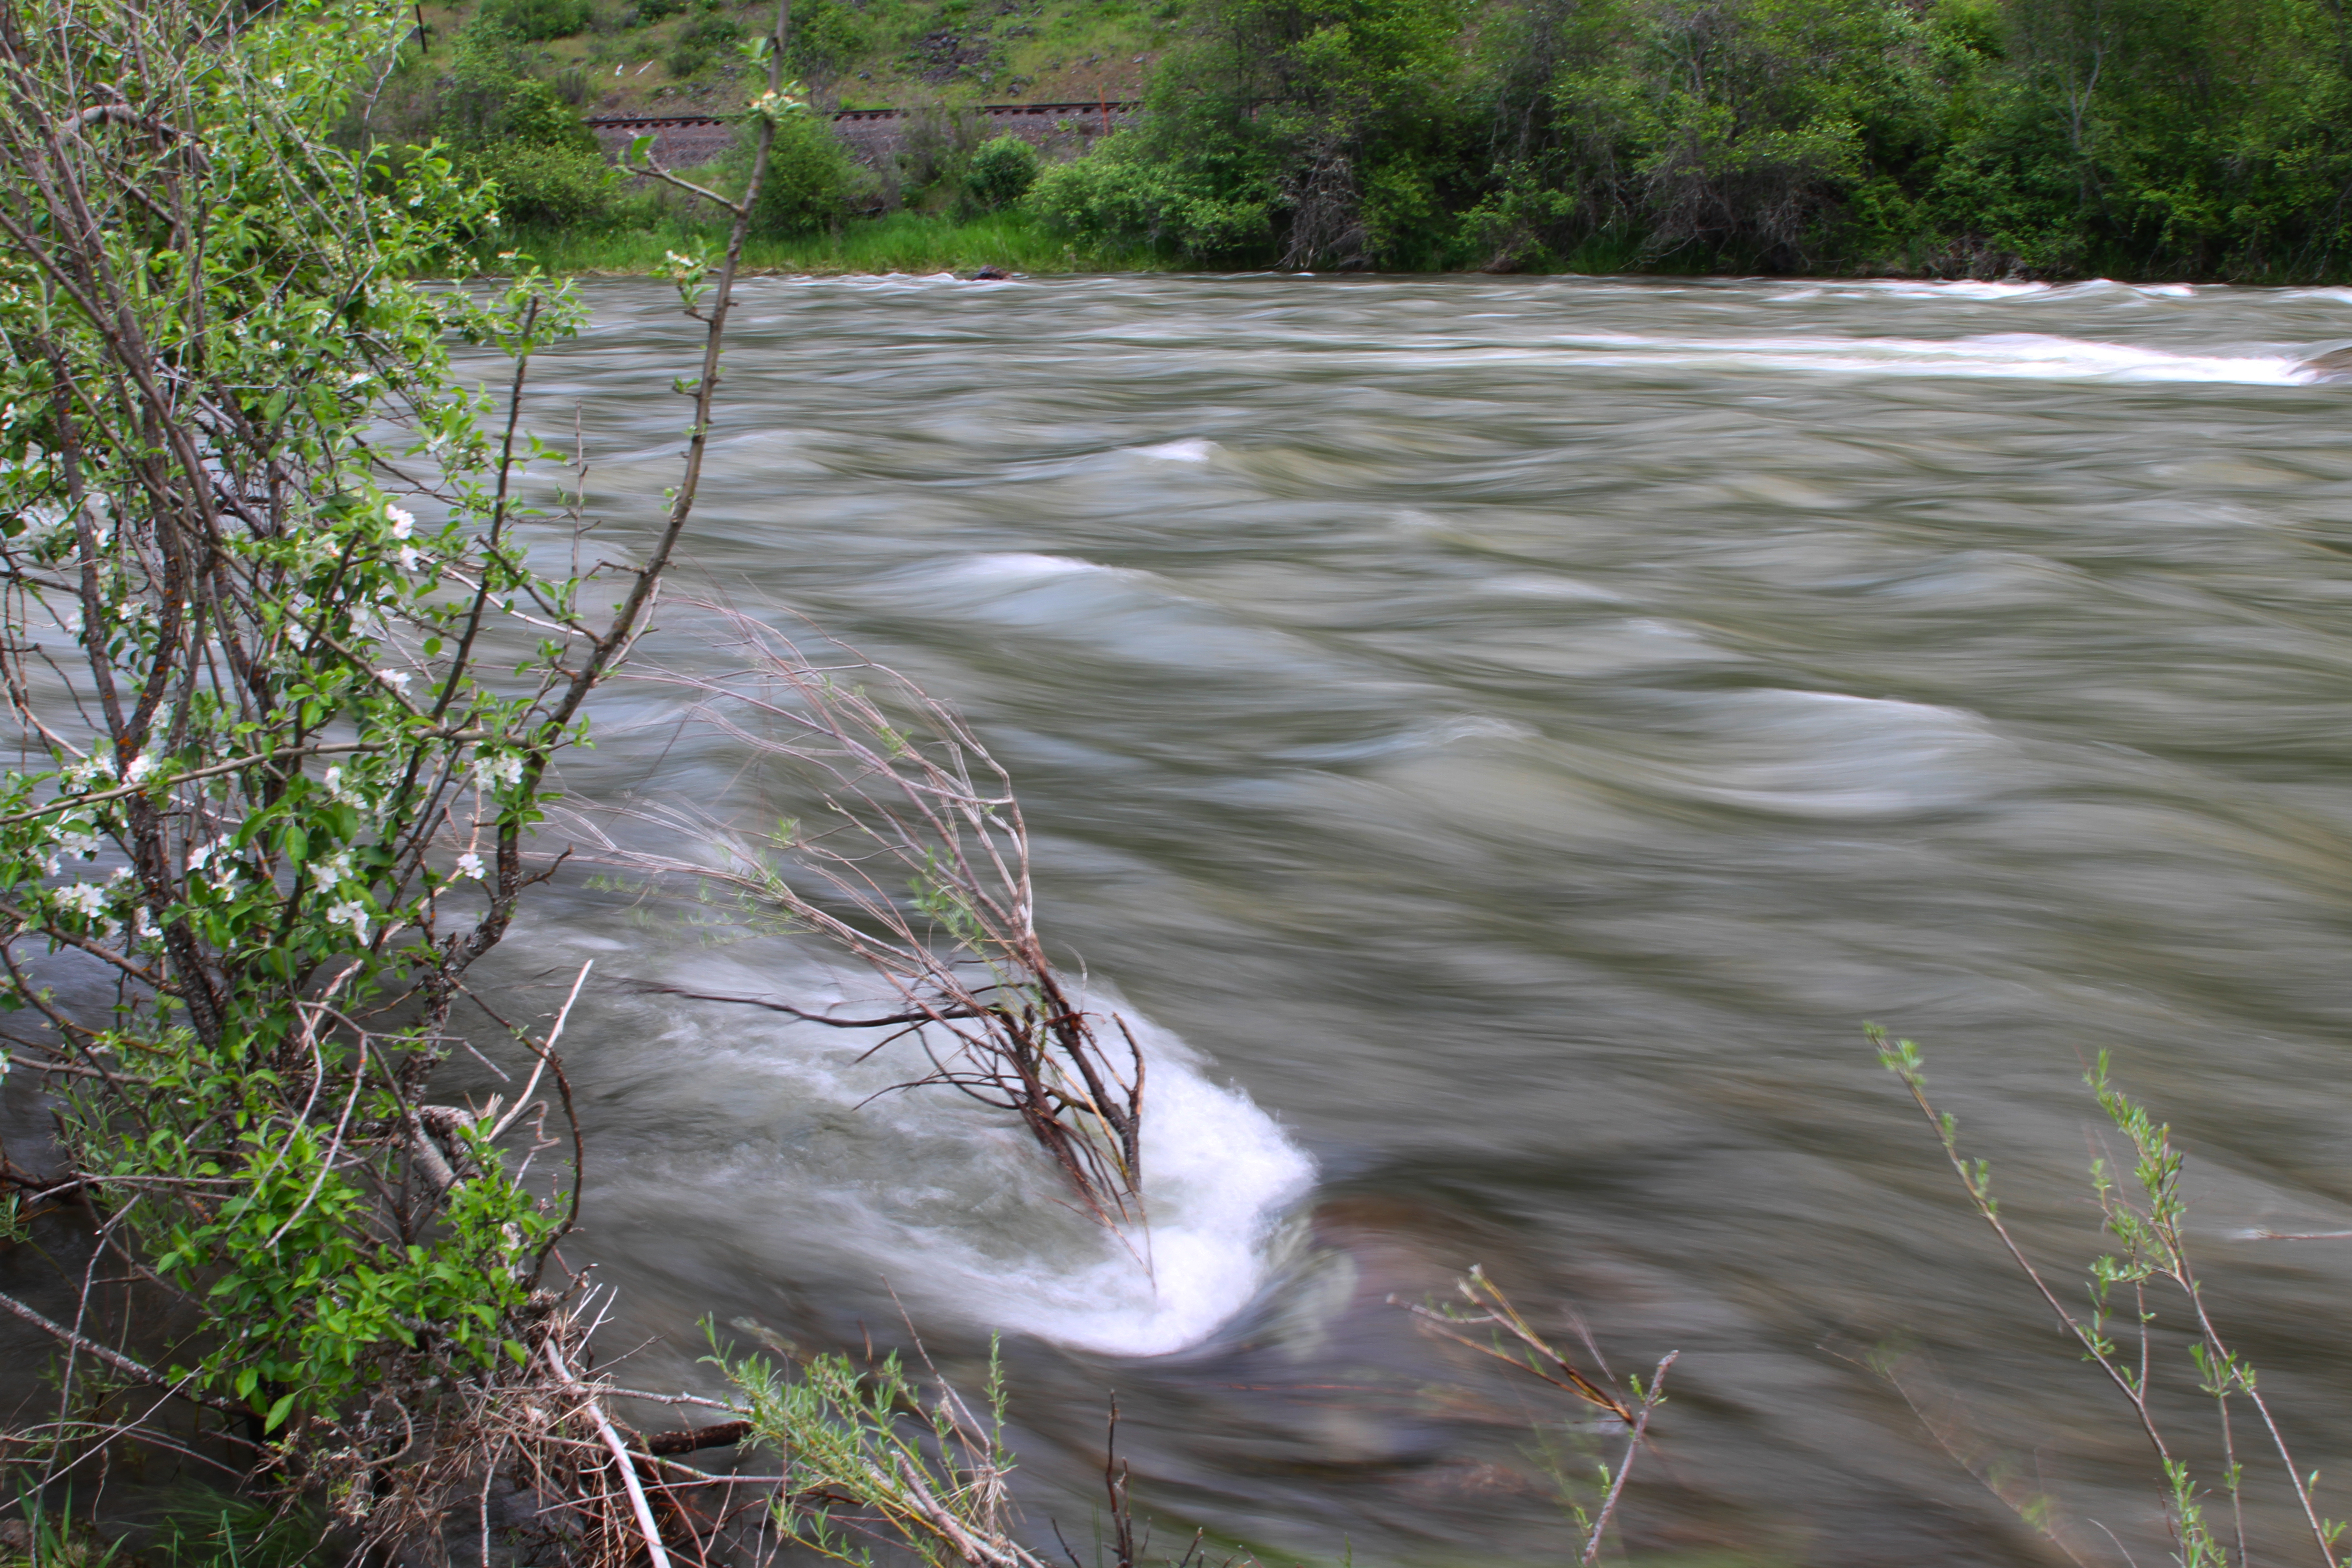 Oregon, to its confluence with the Grande Ronde River, the Wallowa is the gateway to the Wild and Scenic Grande Ronde River. Approximately 10 miles in length